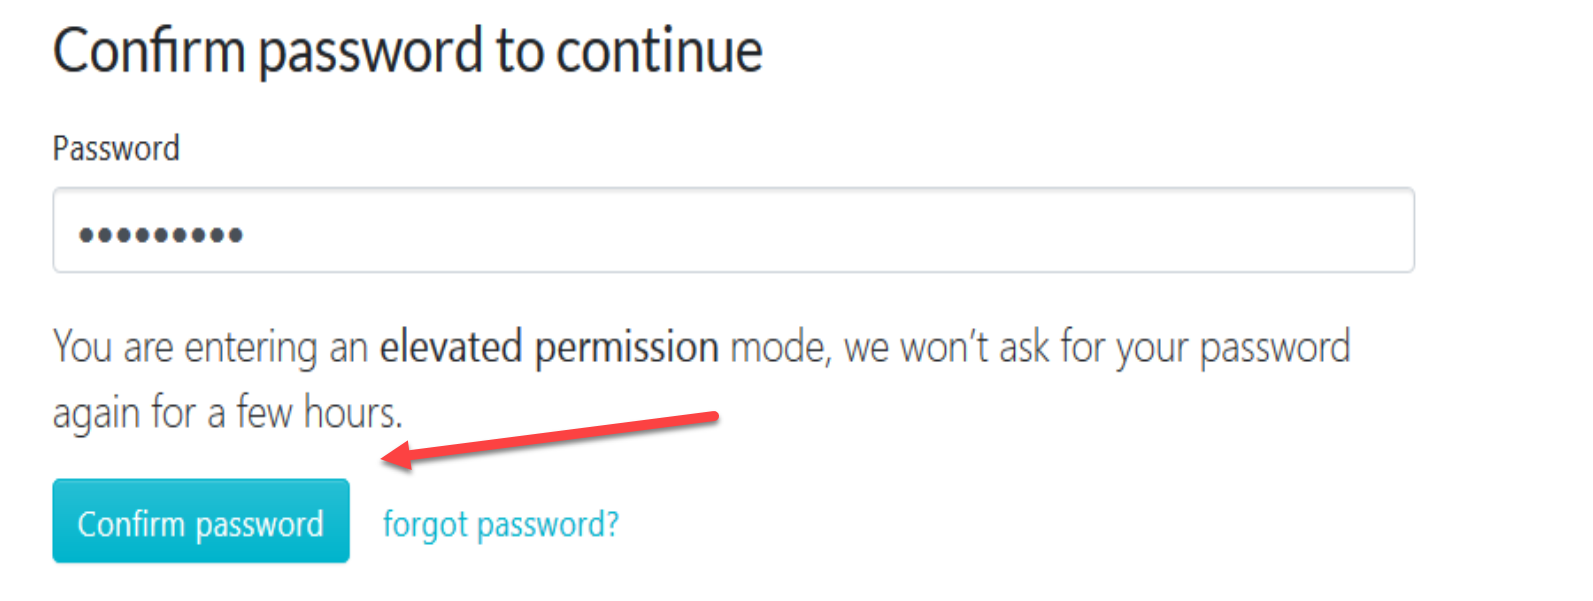 "When the new page loads, click on ""Confirm password"" to continue."